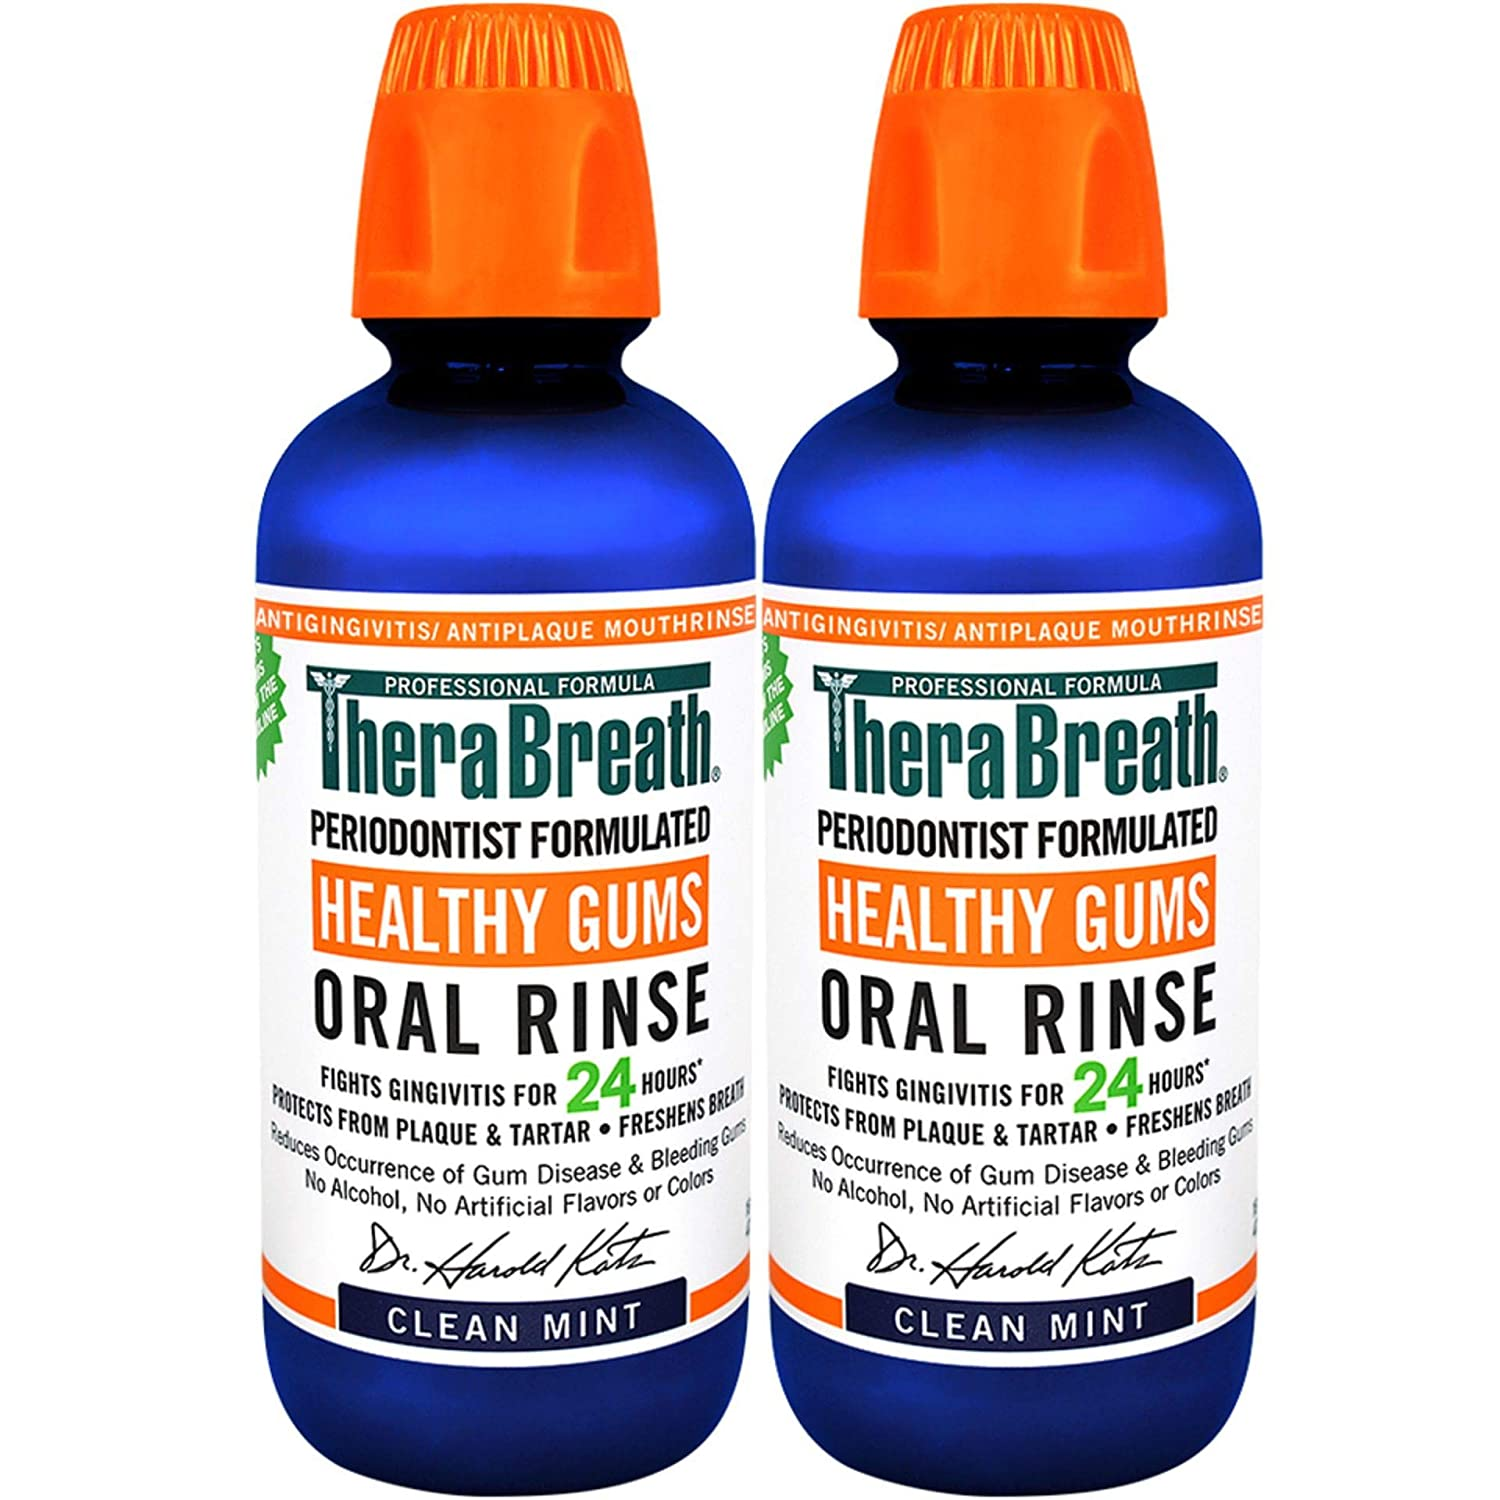 TheraBreath 24 Hour Healthy Gums Periodontist Formulated Oral Rinse, 16 Ounce (Pack of 2): Health & Personal Care